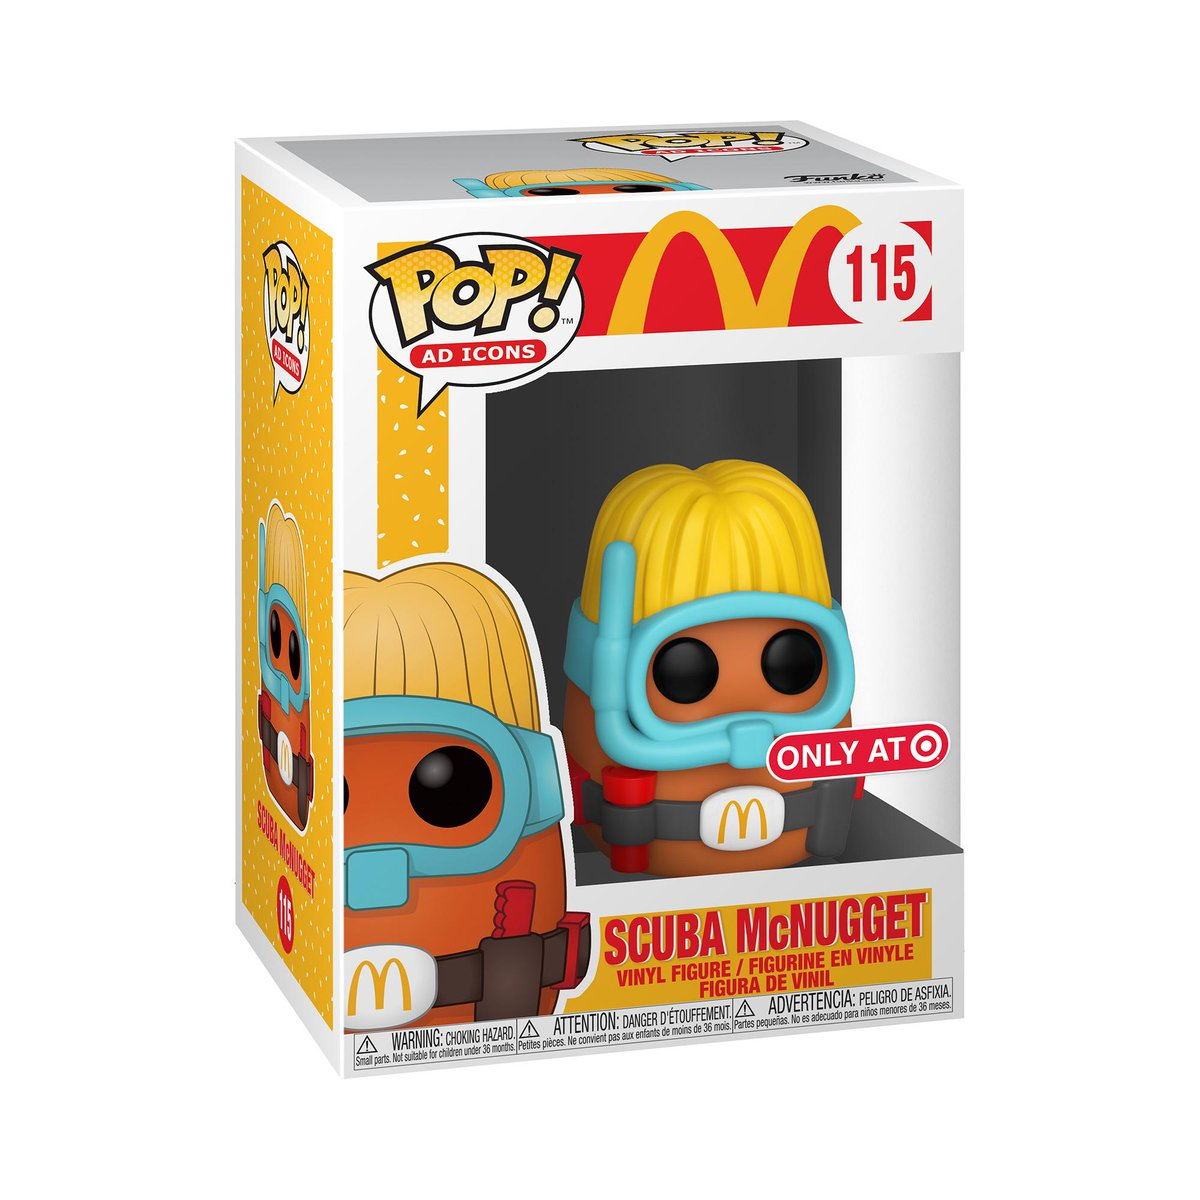 RT & follow @OriginalFunko for the chance to WIN @Target exclusive @McDonalds Scuba McNugget Pop! #Funkogiveaway #McDonalds #Funko #FunkoPop